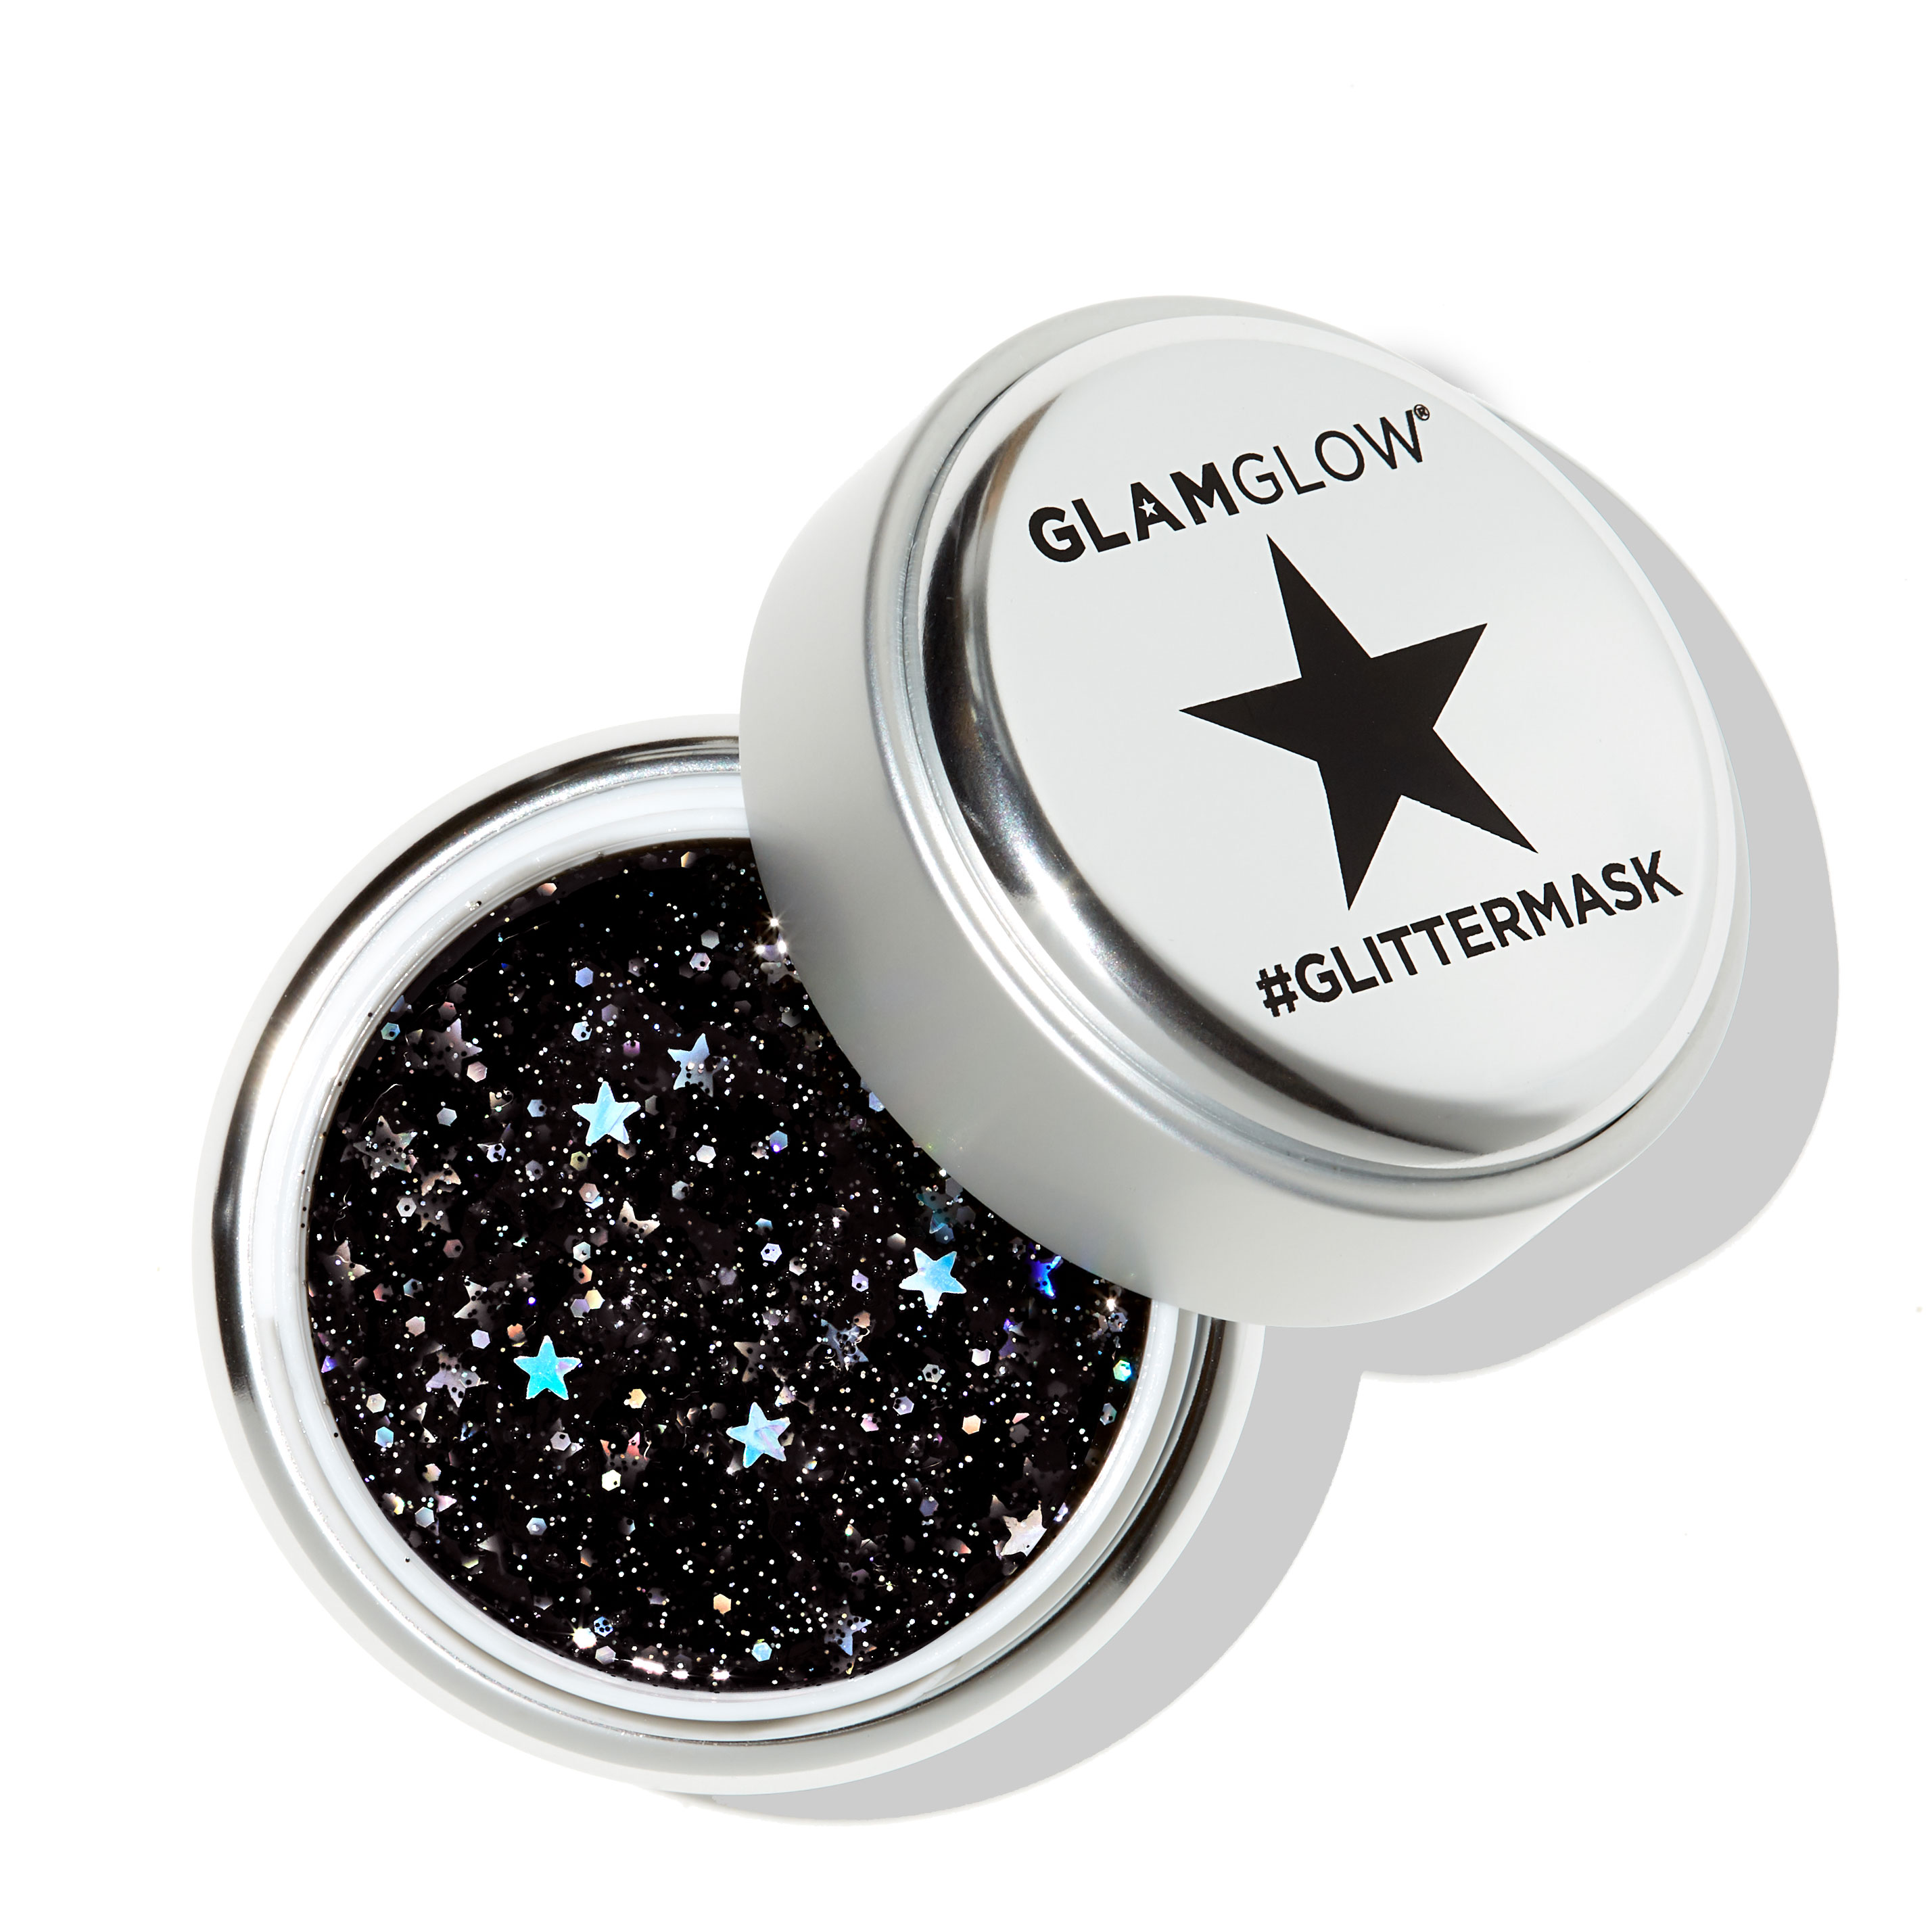 A sparkly night in with Glamglows' Glittermask.